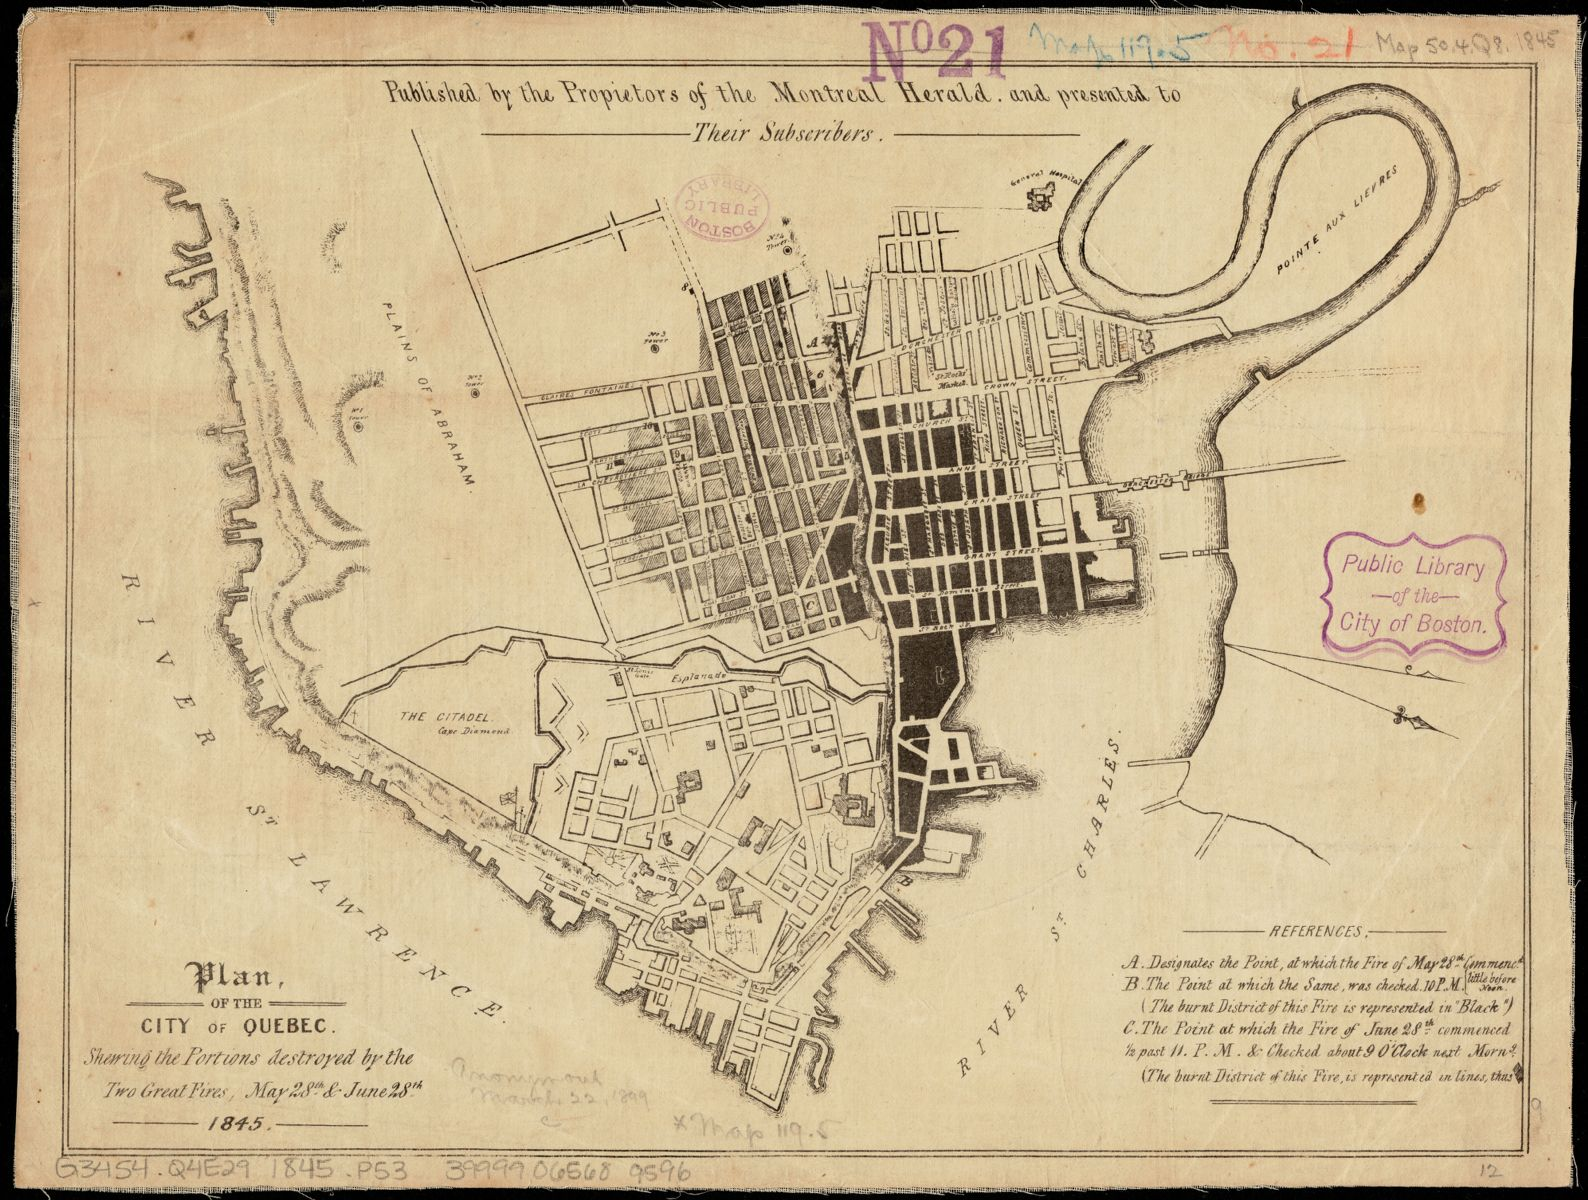 Plan of the city of Quebec (1845)